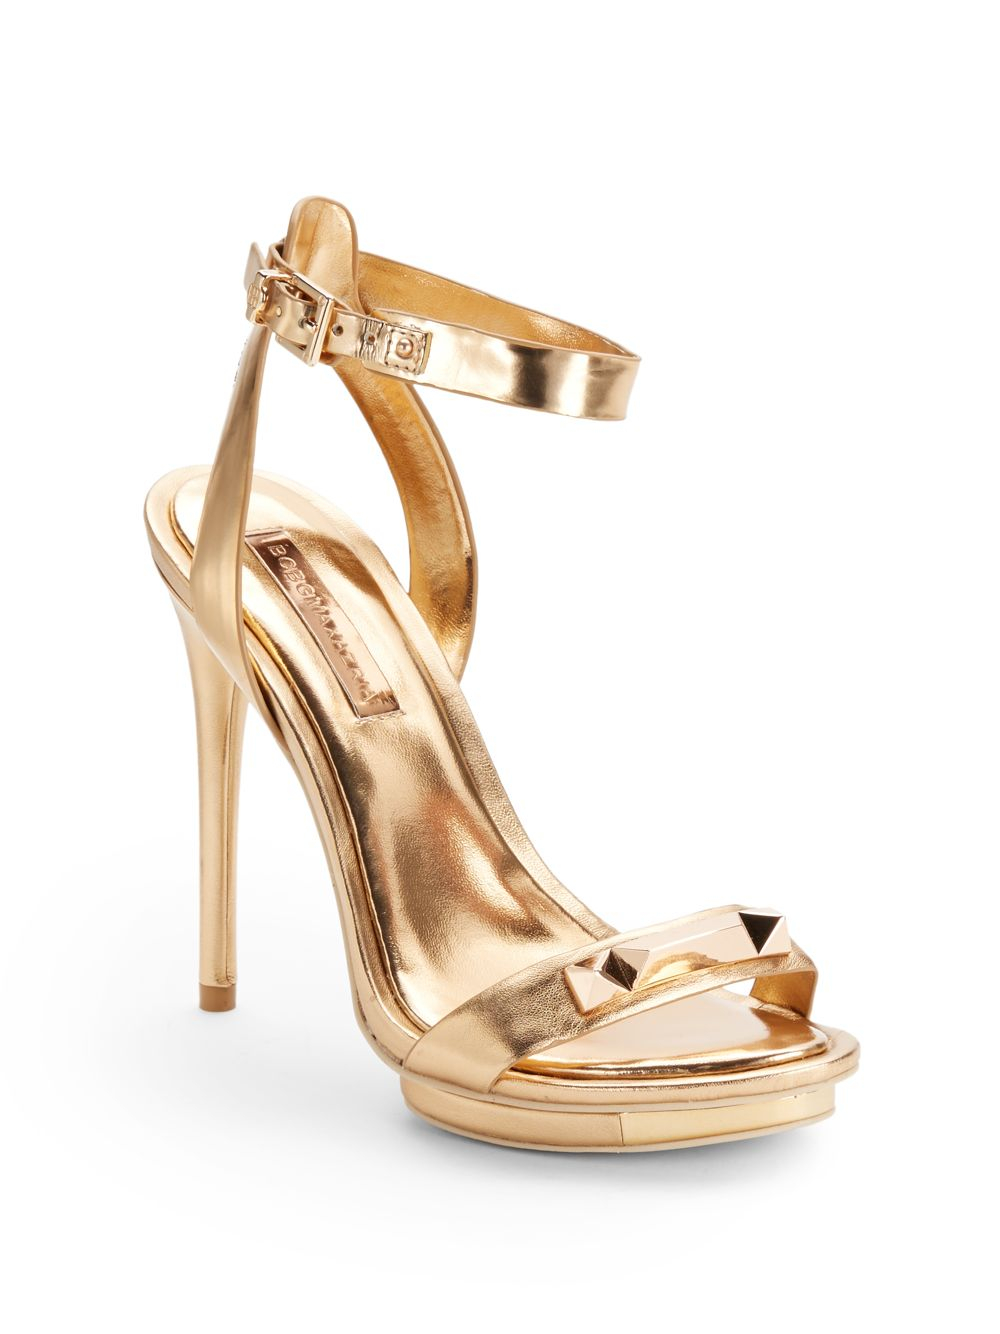 Bcbgmaxazria Freesia Metallic Leather High Heel Sandals in